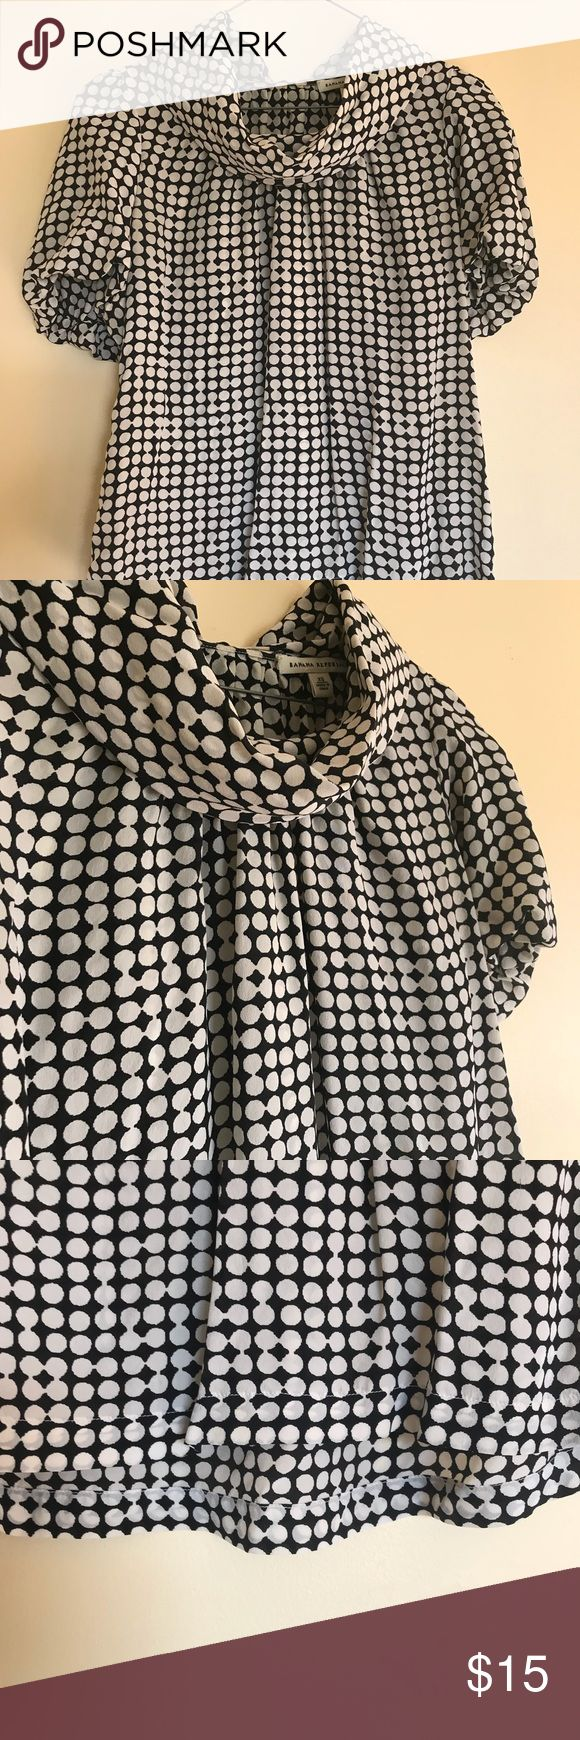 Polka dot short sleeved blouse Cute polka dot top with cowl neck. Adorable button detail on the back. Great for business casual wear. Banana Republic Tops Blouses